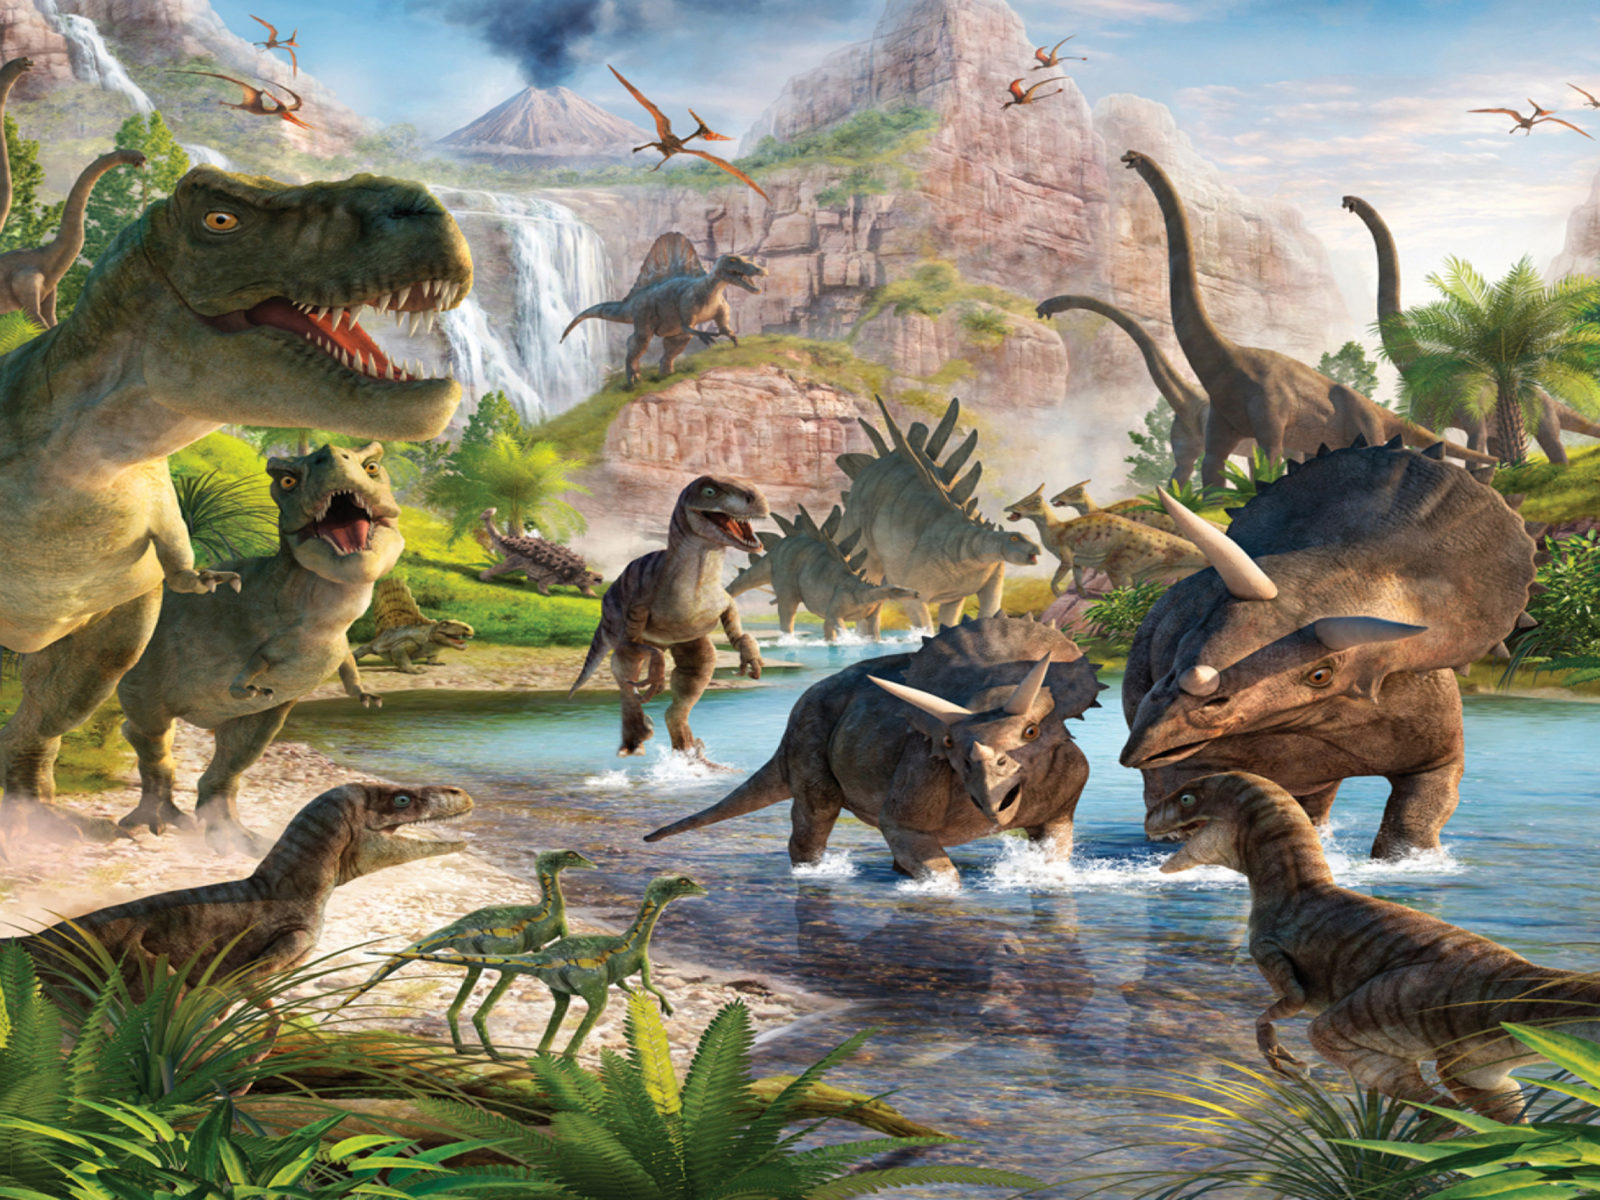 3d Wallpapers For Pc Full Screen Free Download Dinosaurs Wallpapers For Desktop 11686 Full Hd Wallpaper